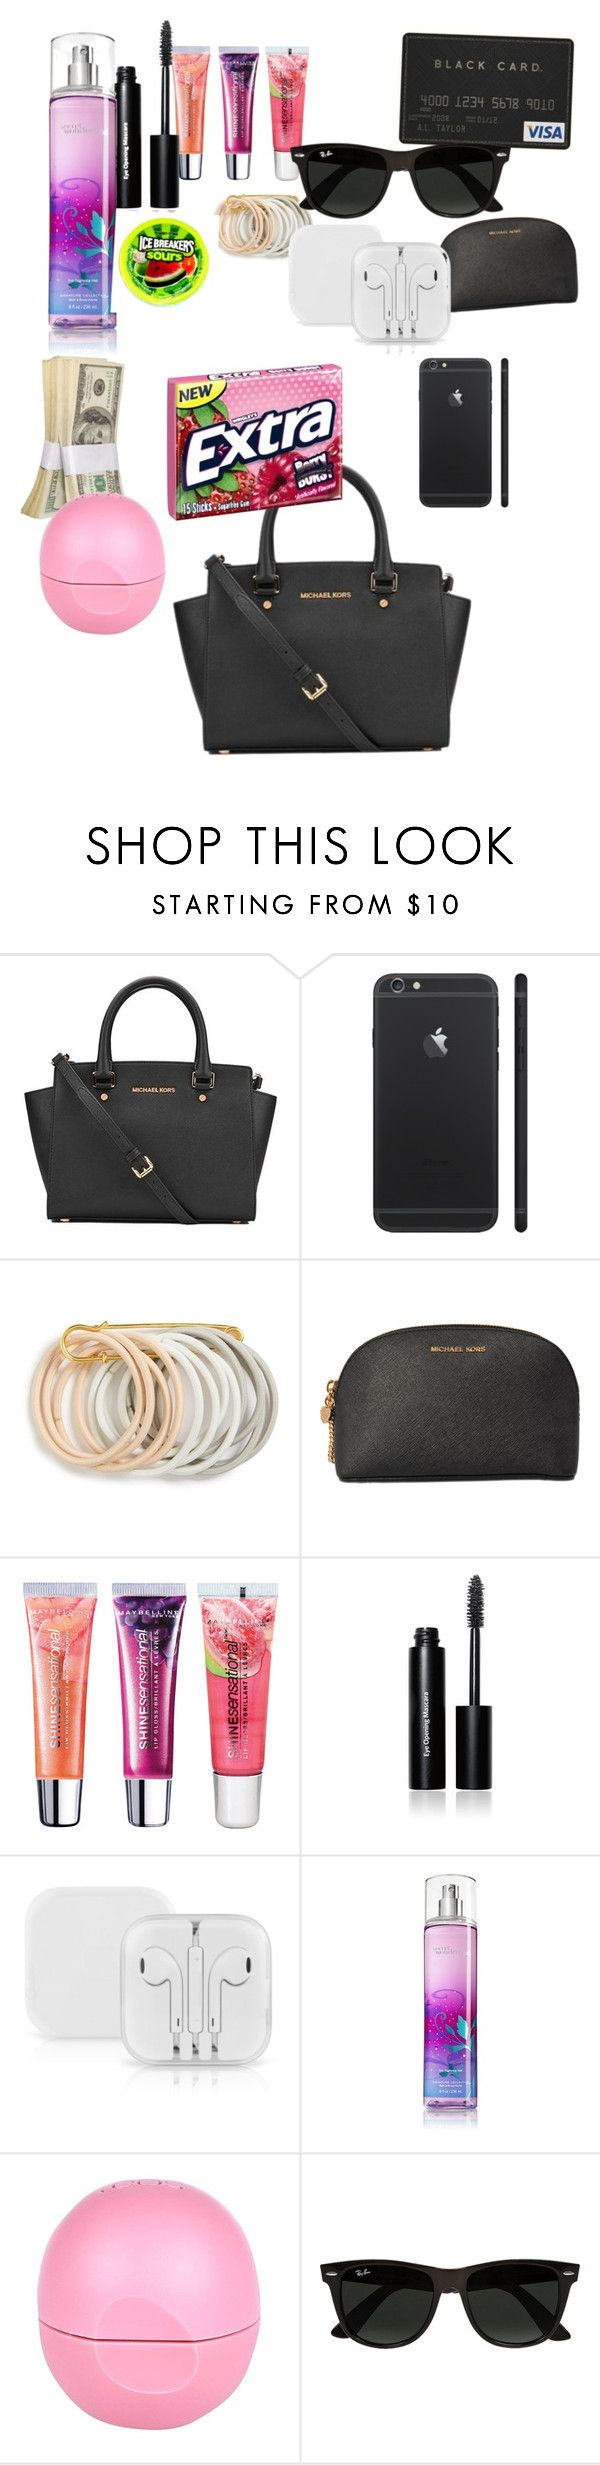 """What's in my purse "" by alana-roan ❤ liked on Polyvore featuring MICHAEL Michael Kors, Odeme, Michael Kors, Maybelline, Bobbi Brown Cosmetics, River Island, Ray-Ban, women's clothing, women's fashion and women"